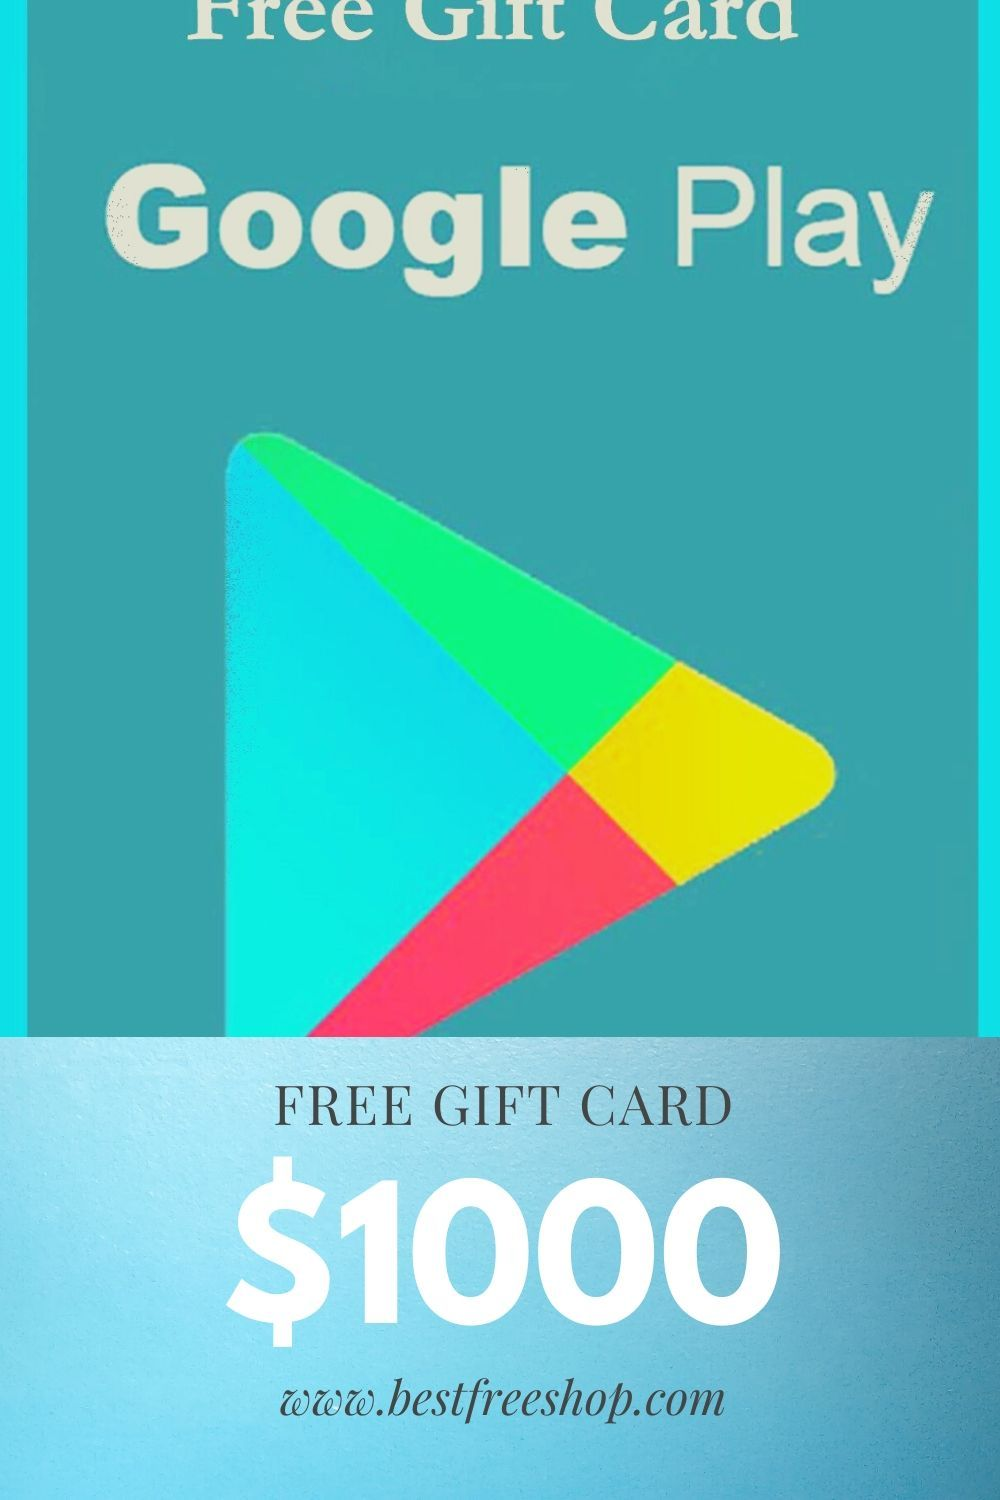 Google play free gift card in 2020 google play gift card